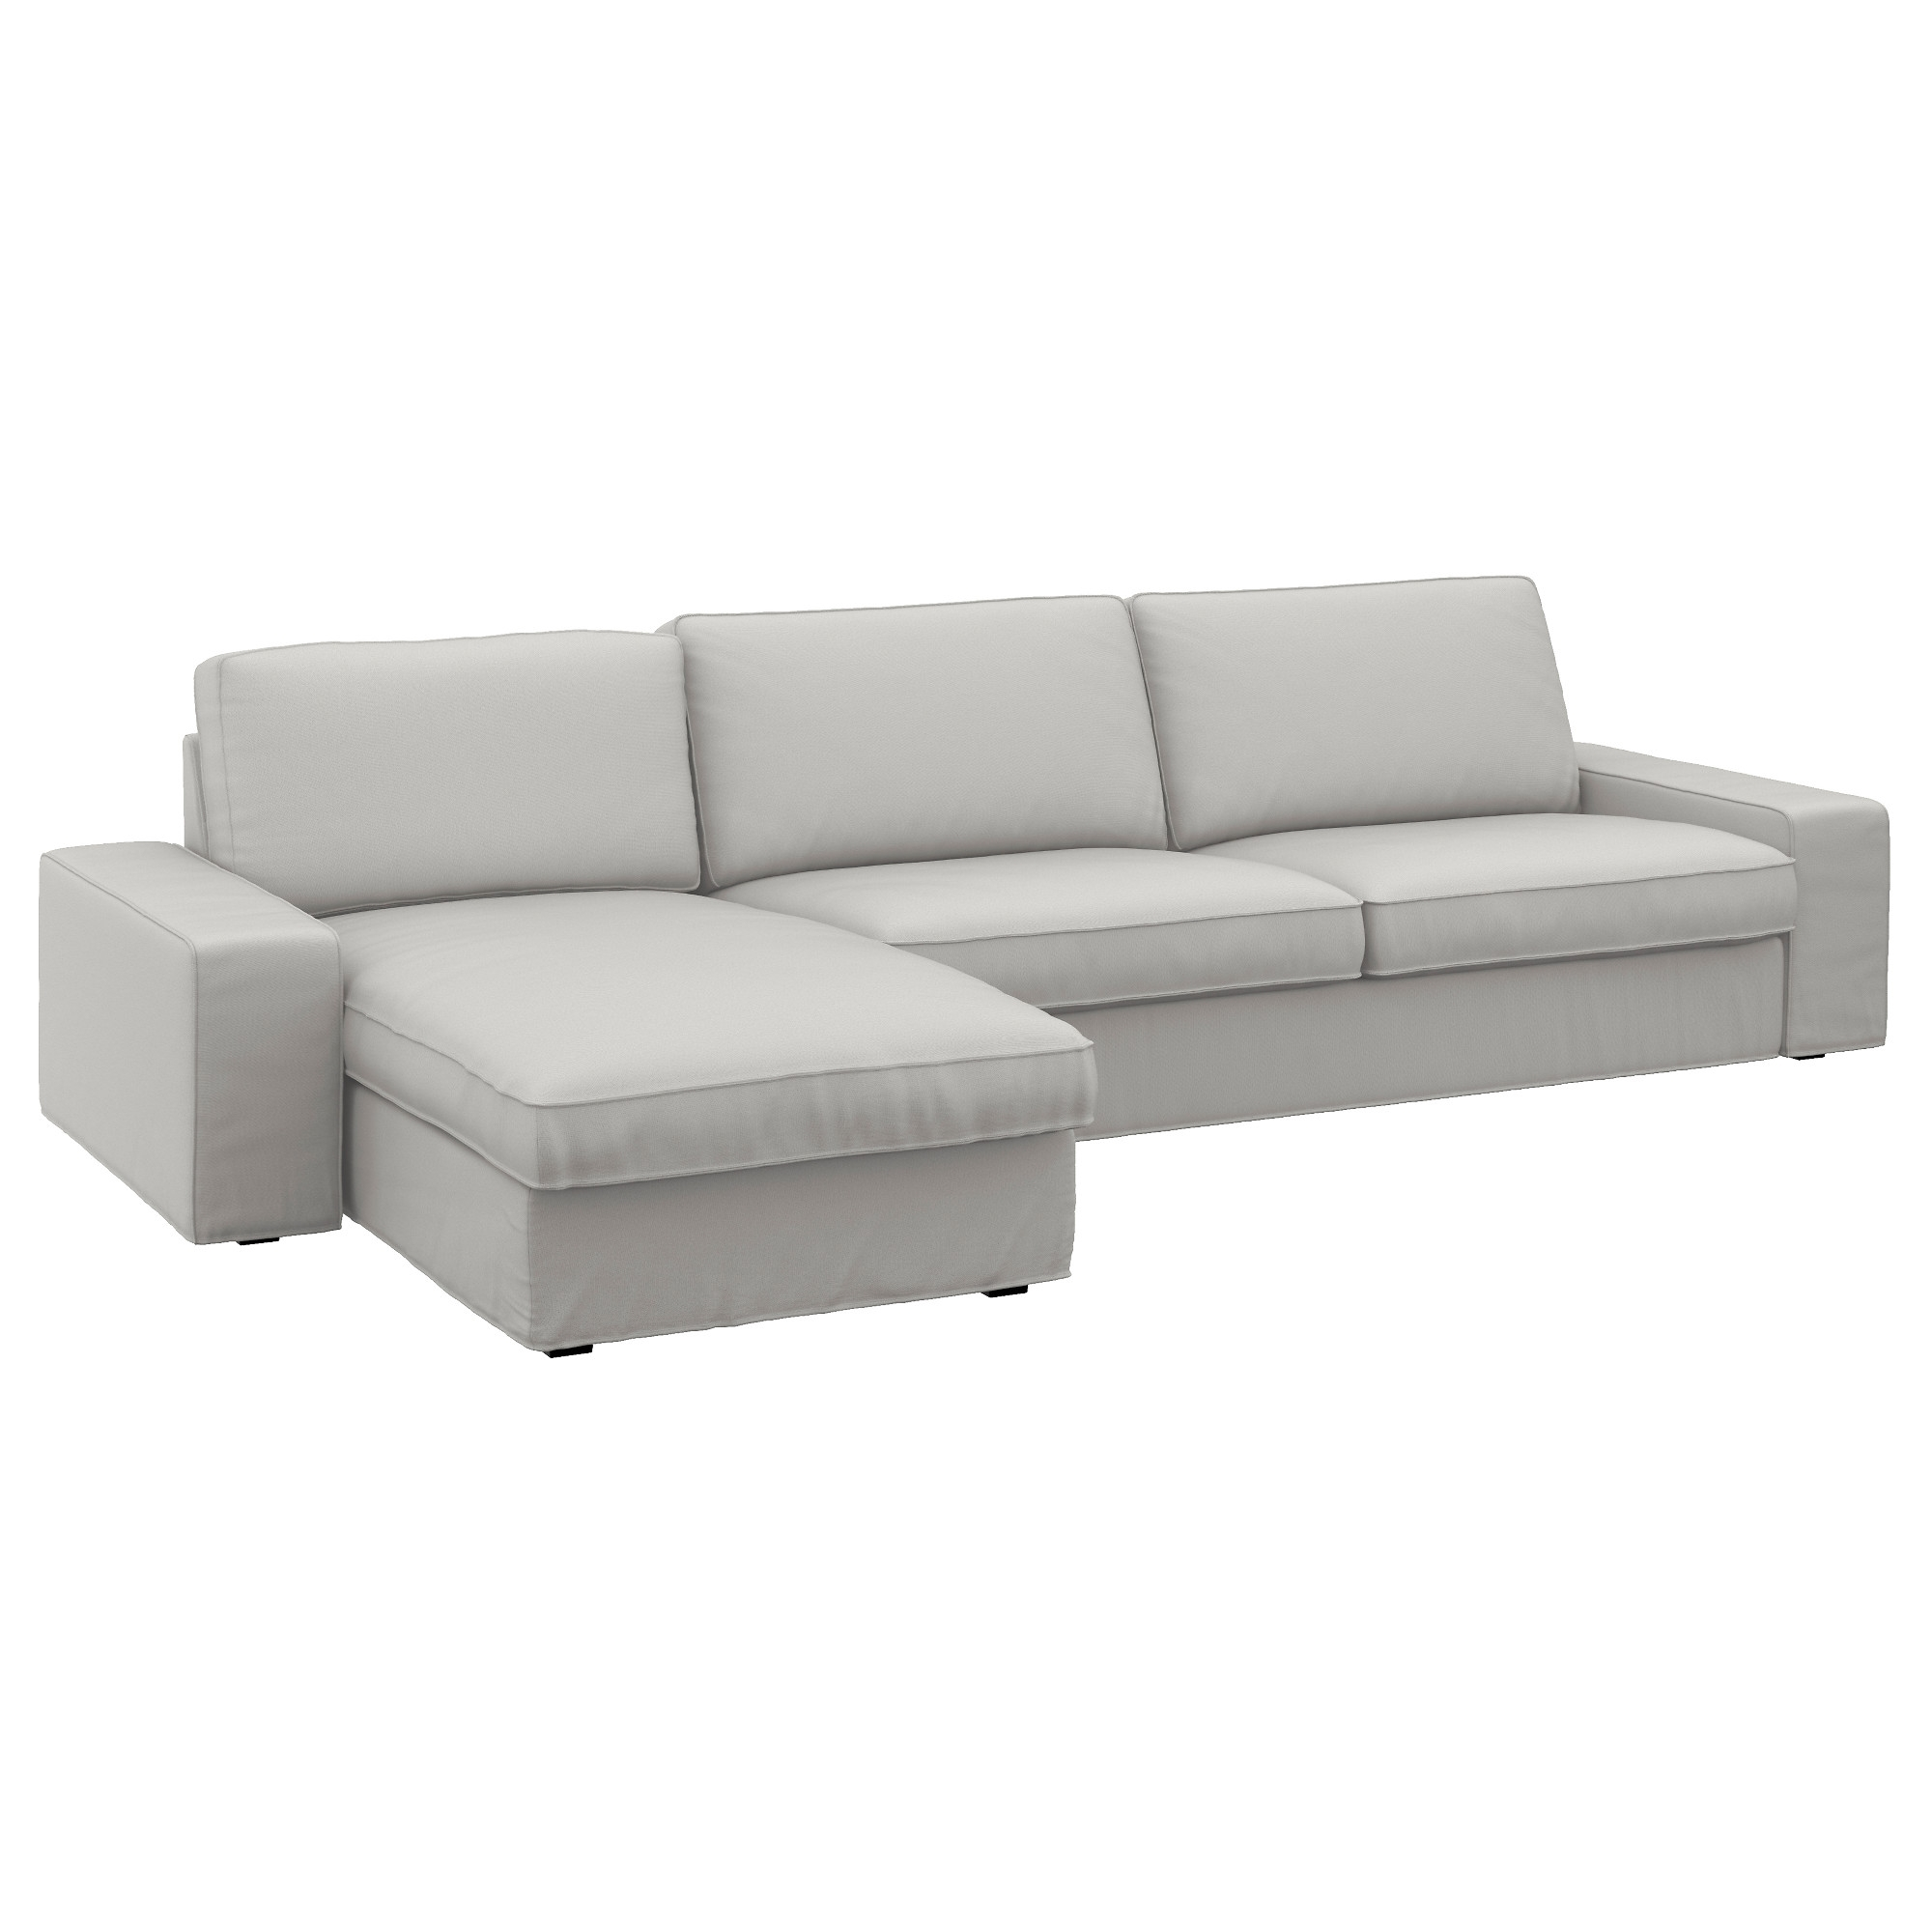 Famous 4 Seat Sofas With Kivik 4 Seat Sofa With Chaise Longue/ramna Light Grey – Ikea (View 6 of 15)